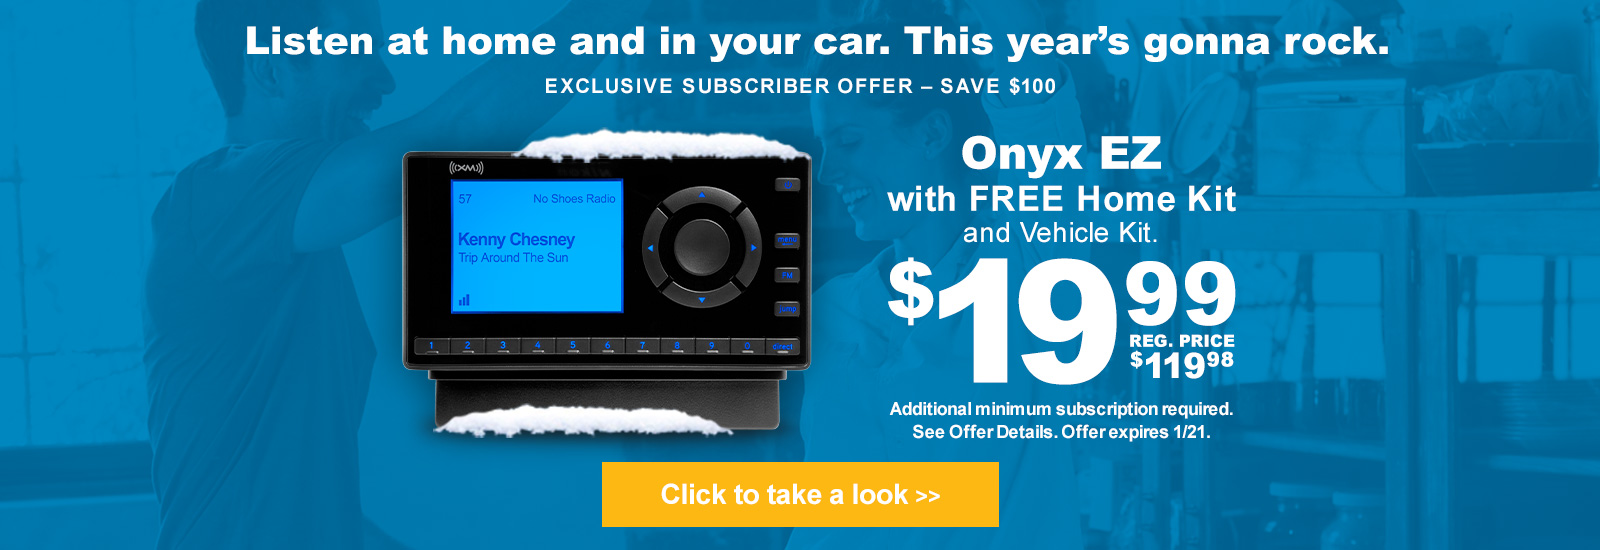 Listen at home and in your car- Onyx EZ with Free Home kit and Vehicle kit for $19.99